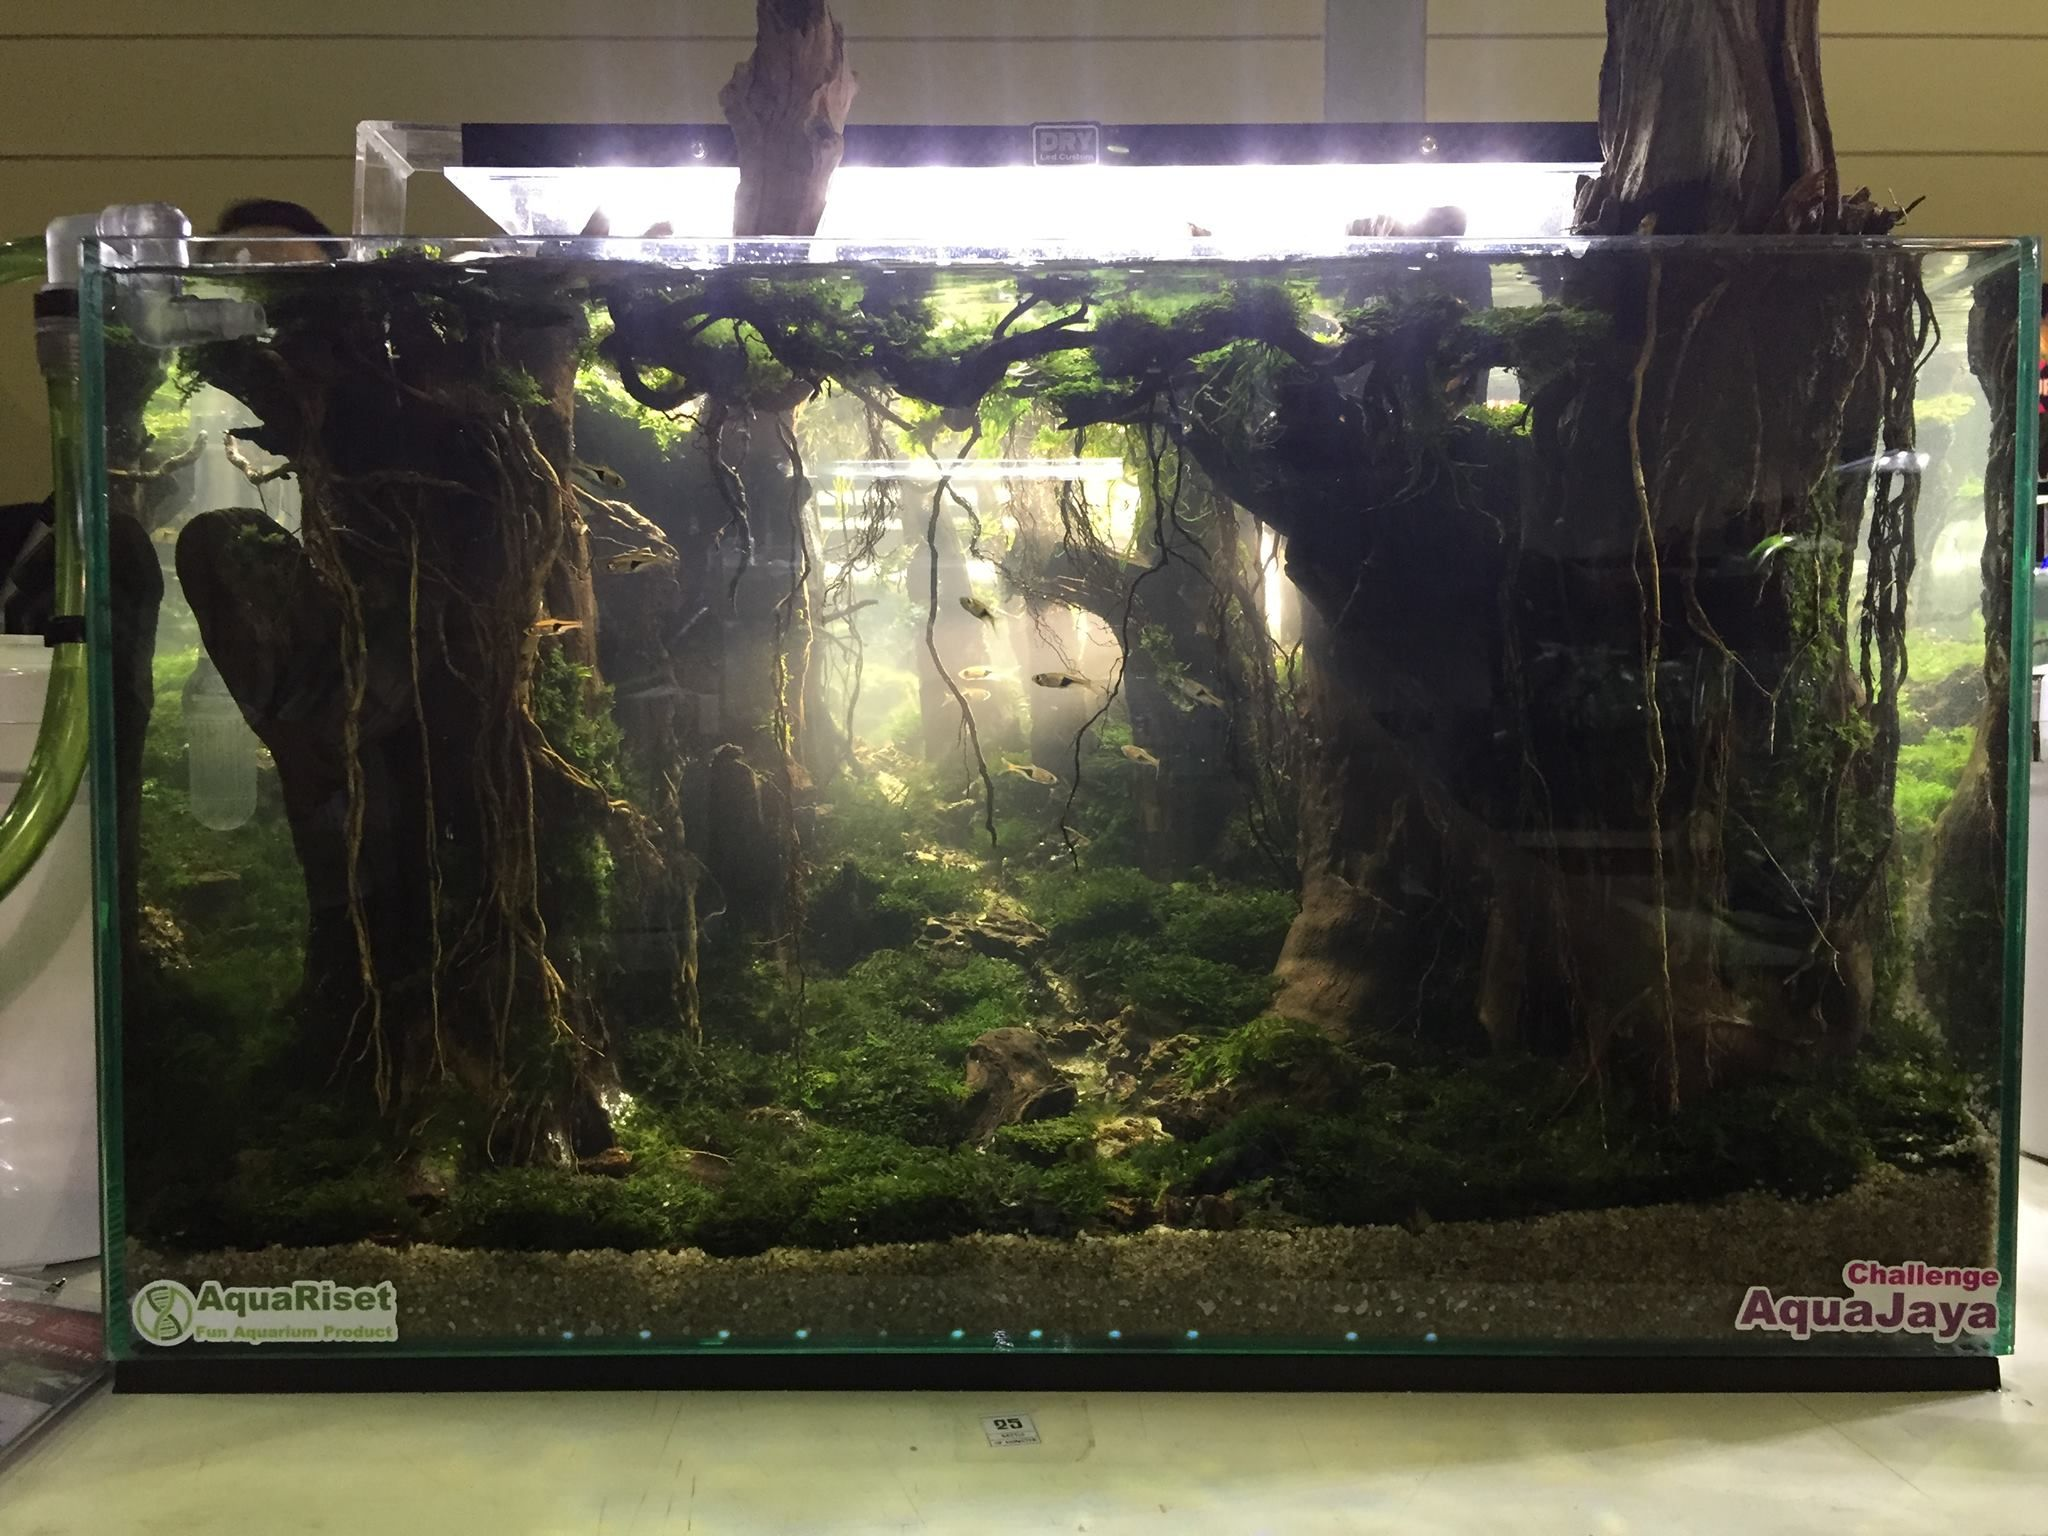 Fish Aquarium Rates In Delhi - Stan chung stunning aquascapes in the best live scaping